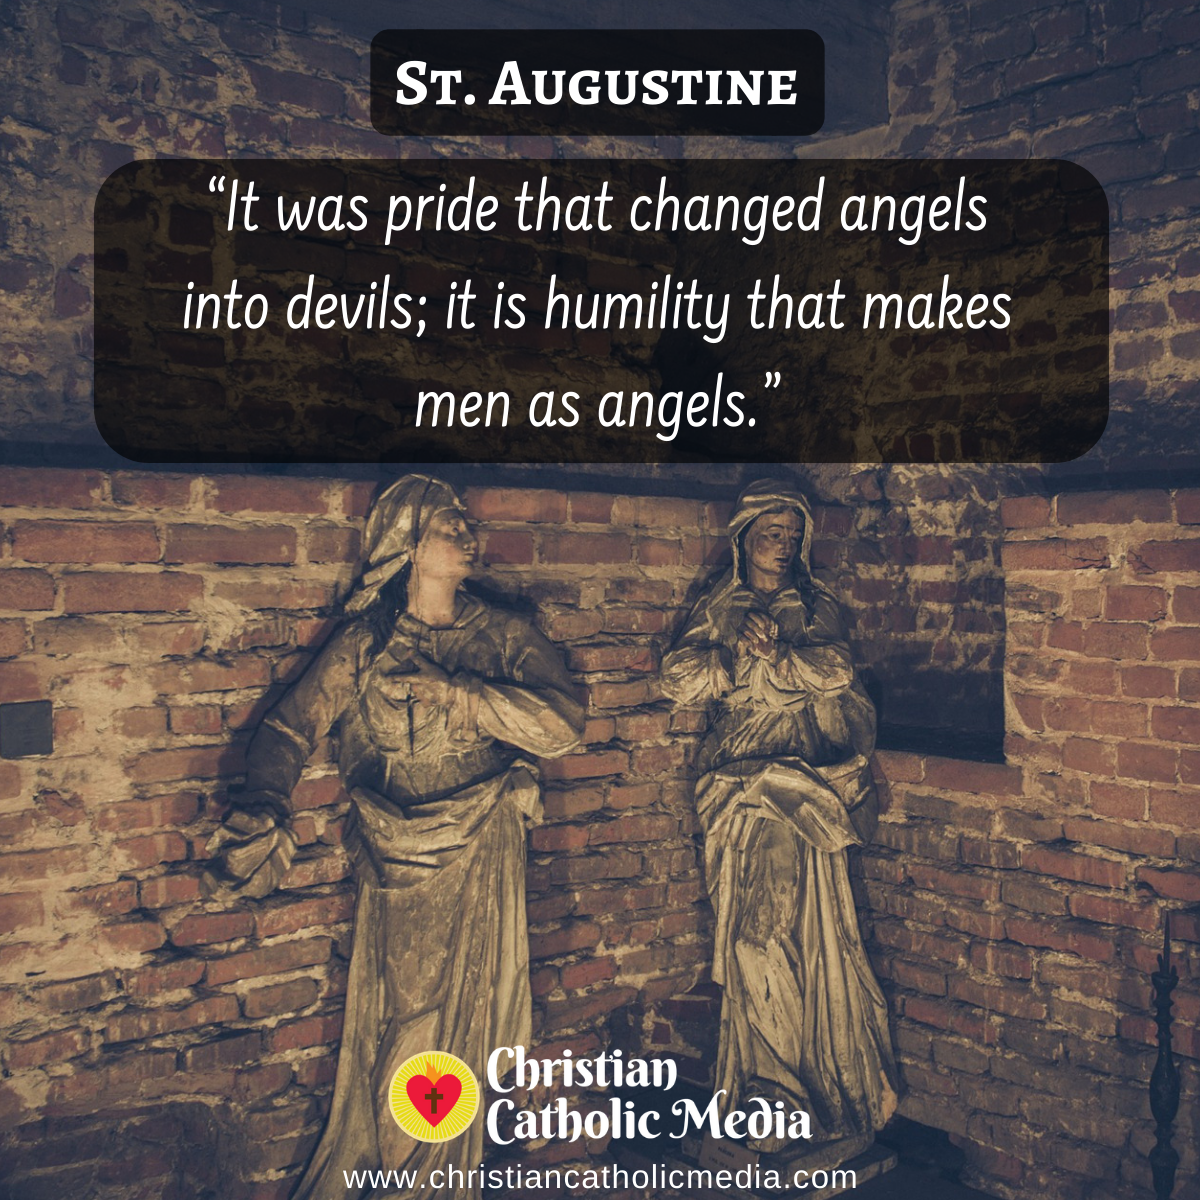 St. Augustine - Thursday December 5, 2019